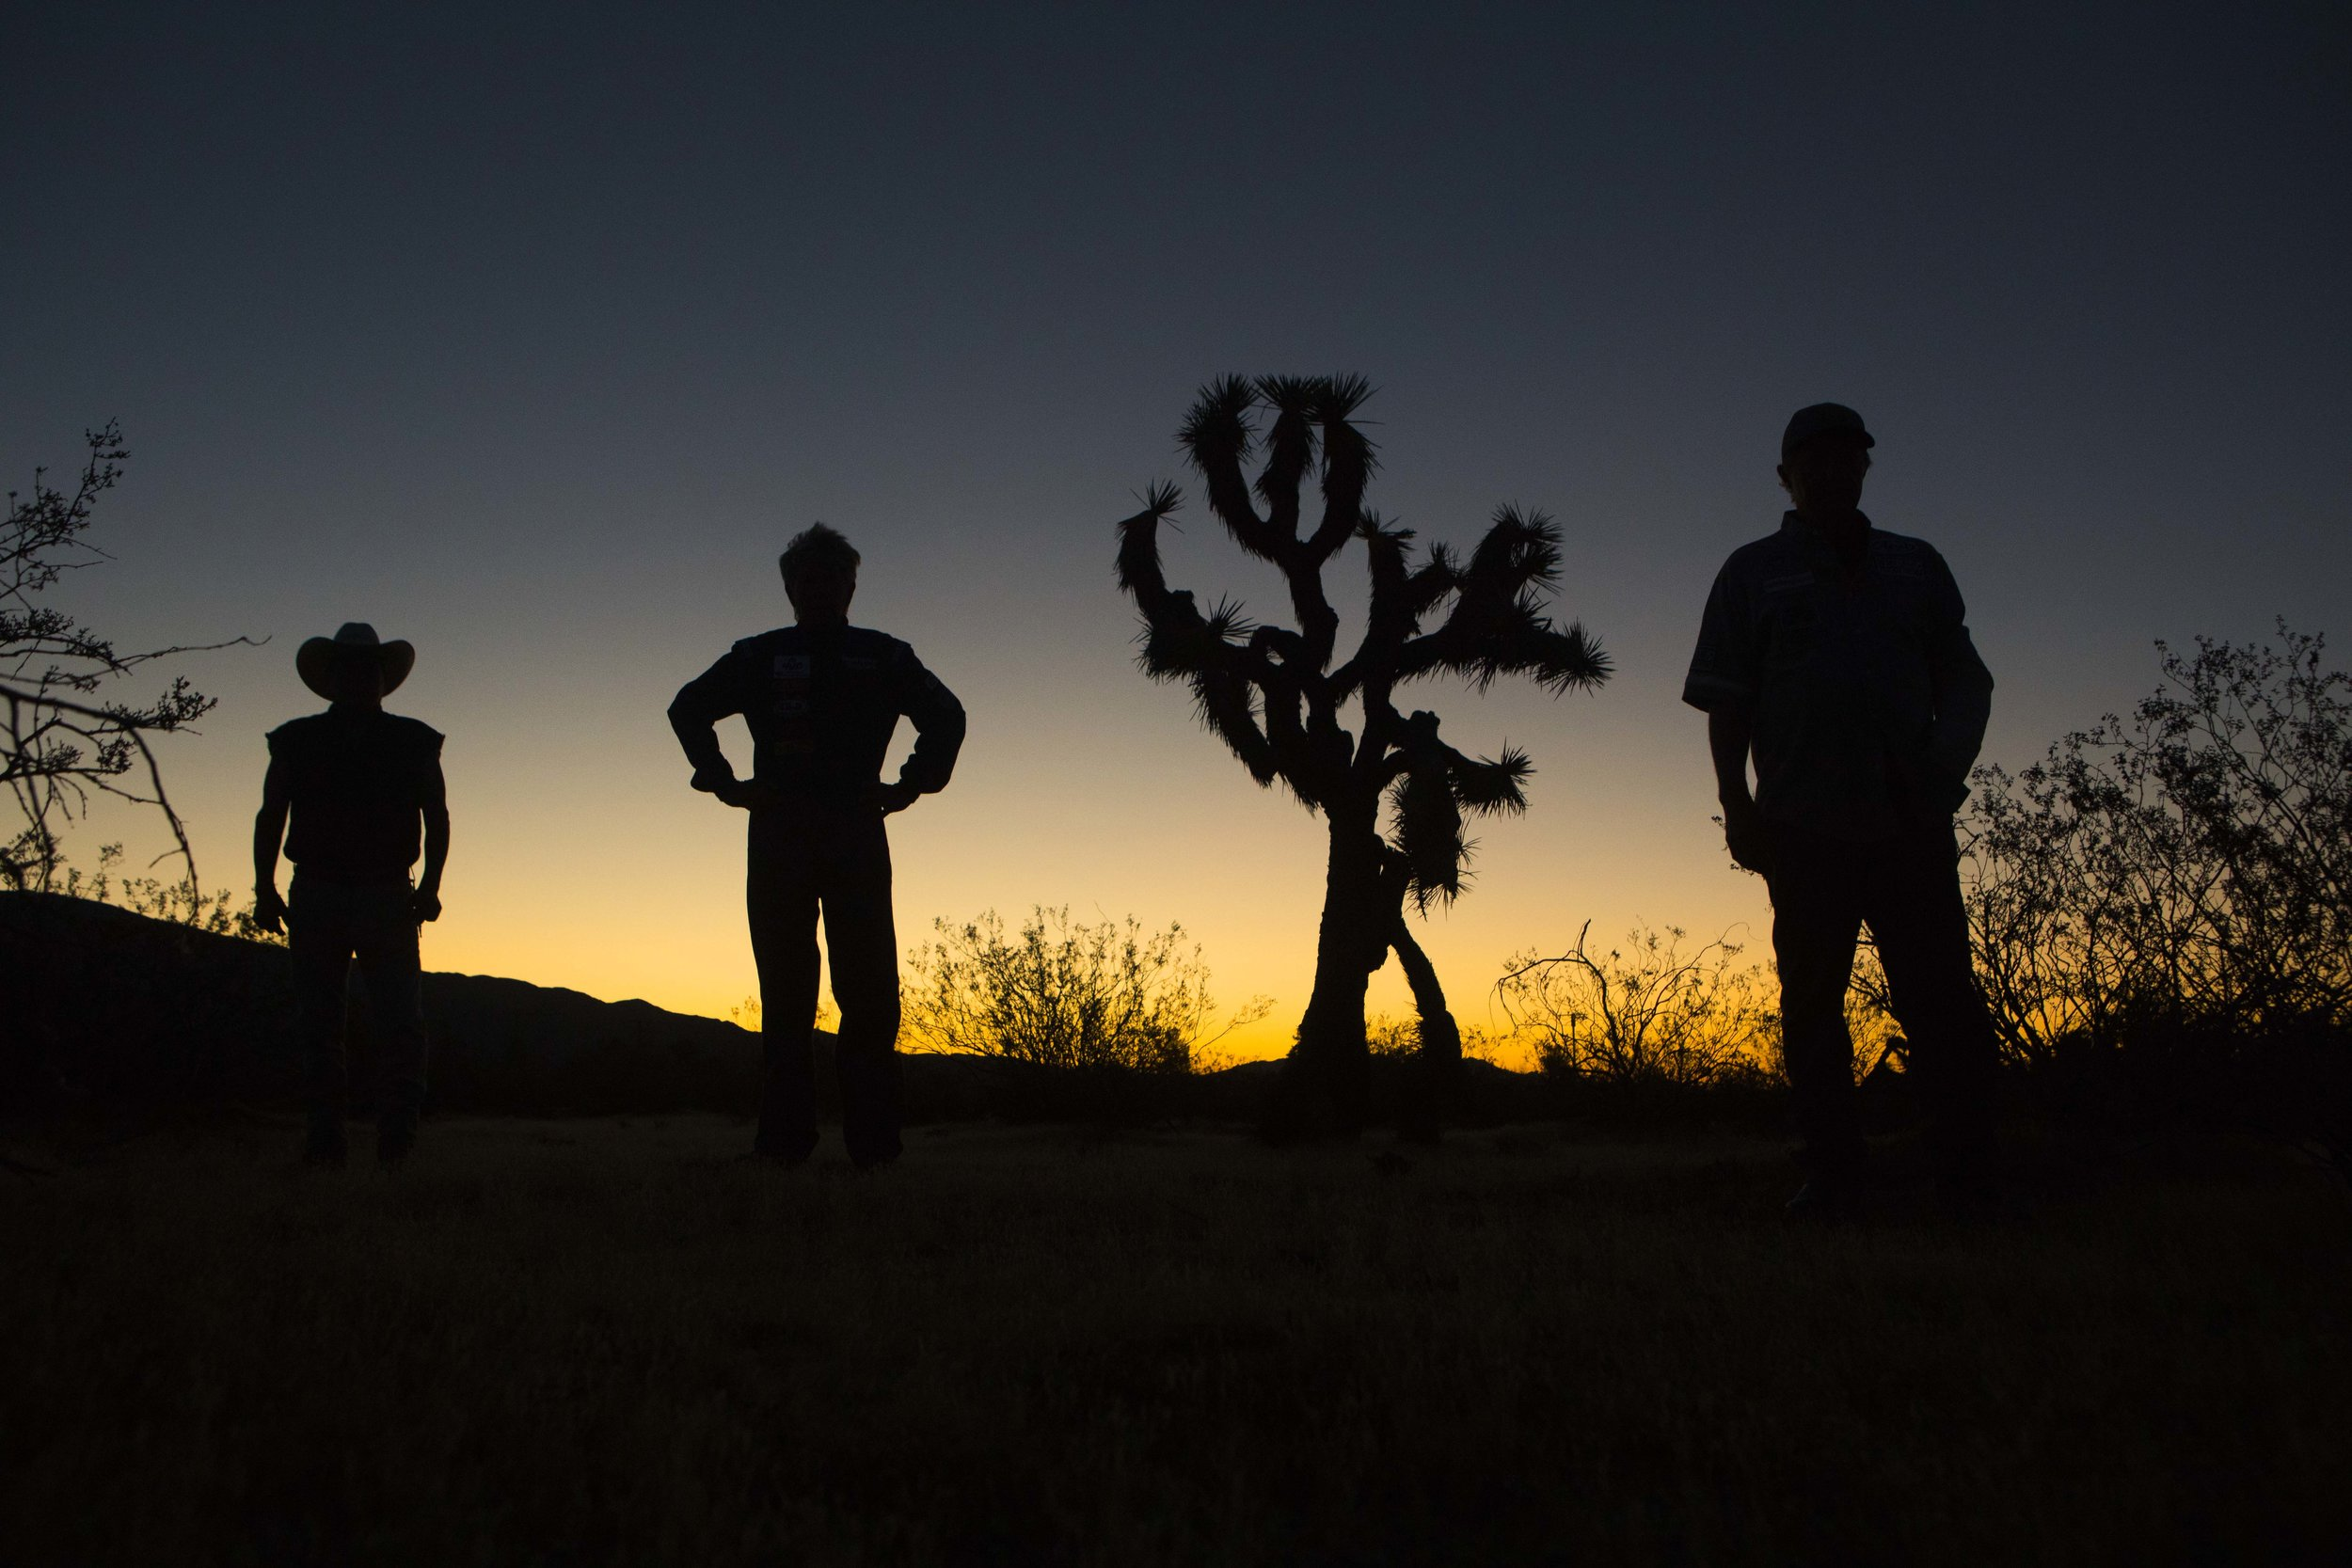 The flat-Earth rocket team stand next to a lone Joshua Tree in the High Desert.